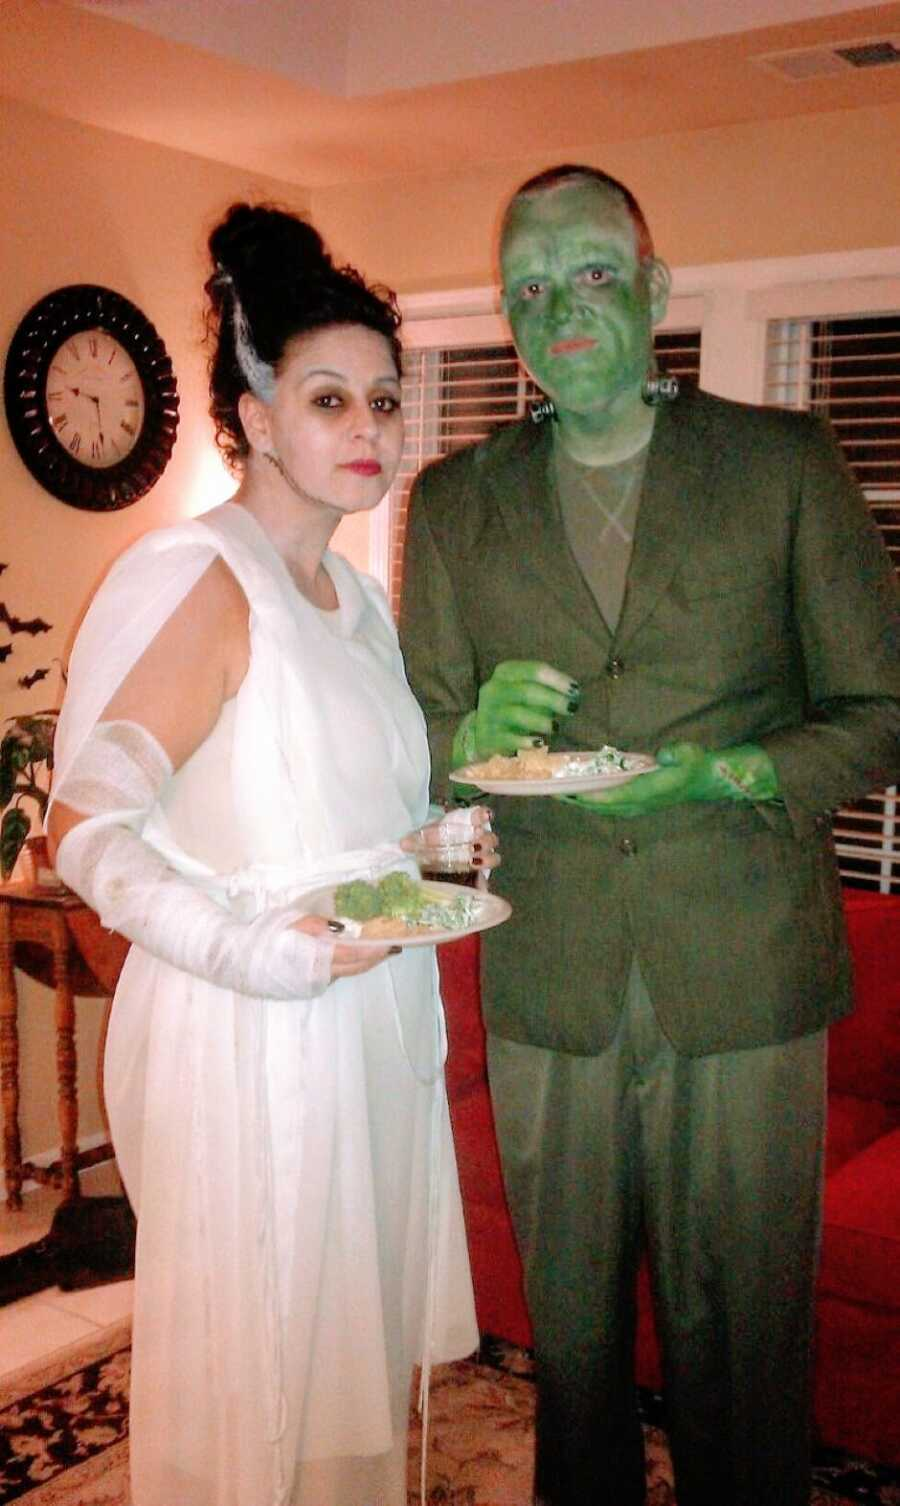 Newly dating couple dress up as Frankenstein and the Bride of Frankenstein for Halloween in 2012